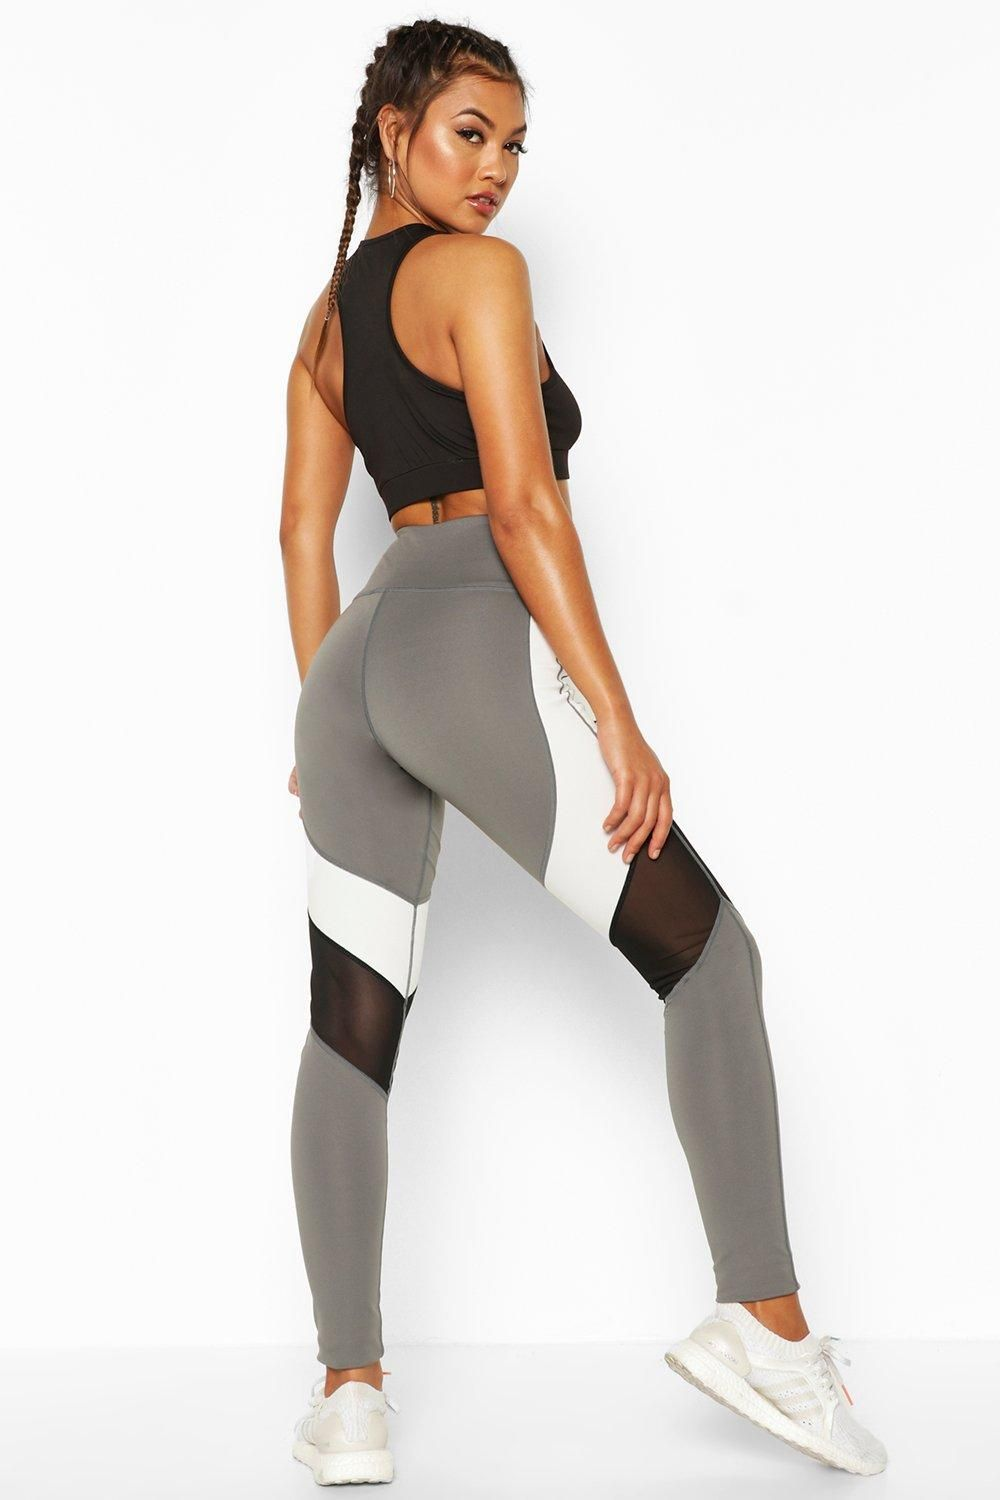 HowManyStepsToWalkToLoseWeight in 2021 Cute gym outfits